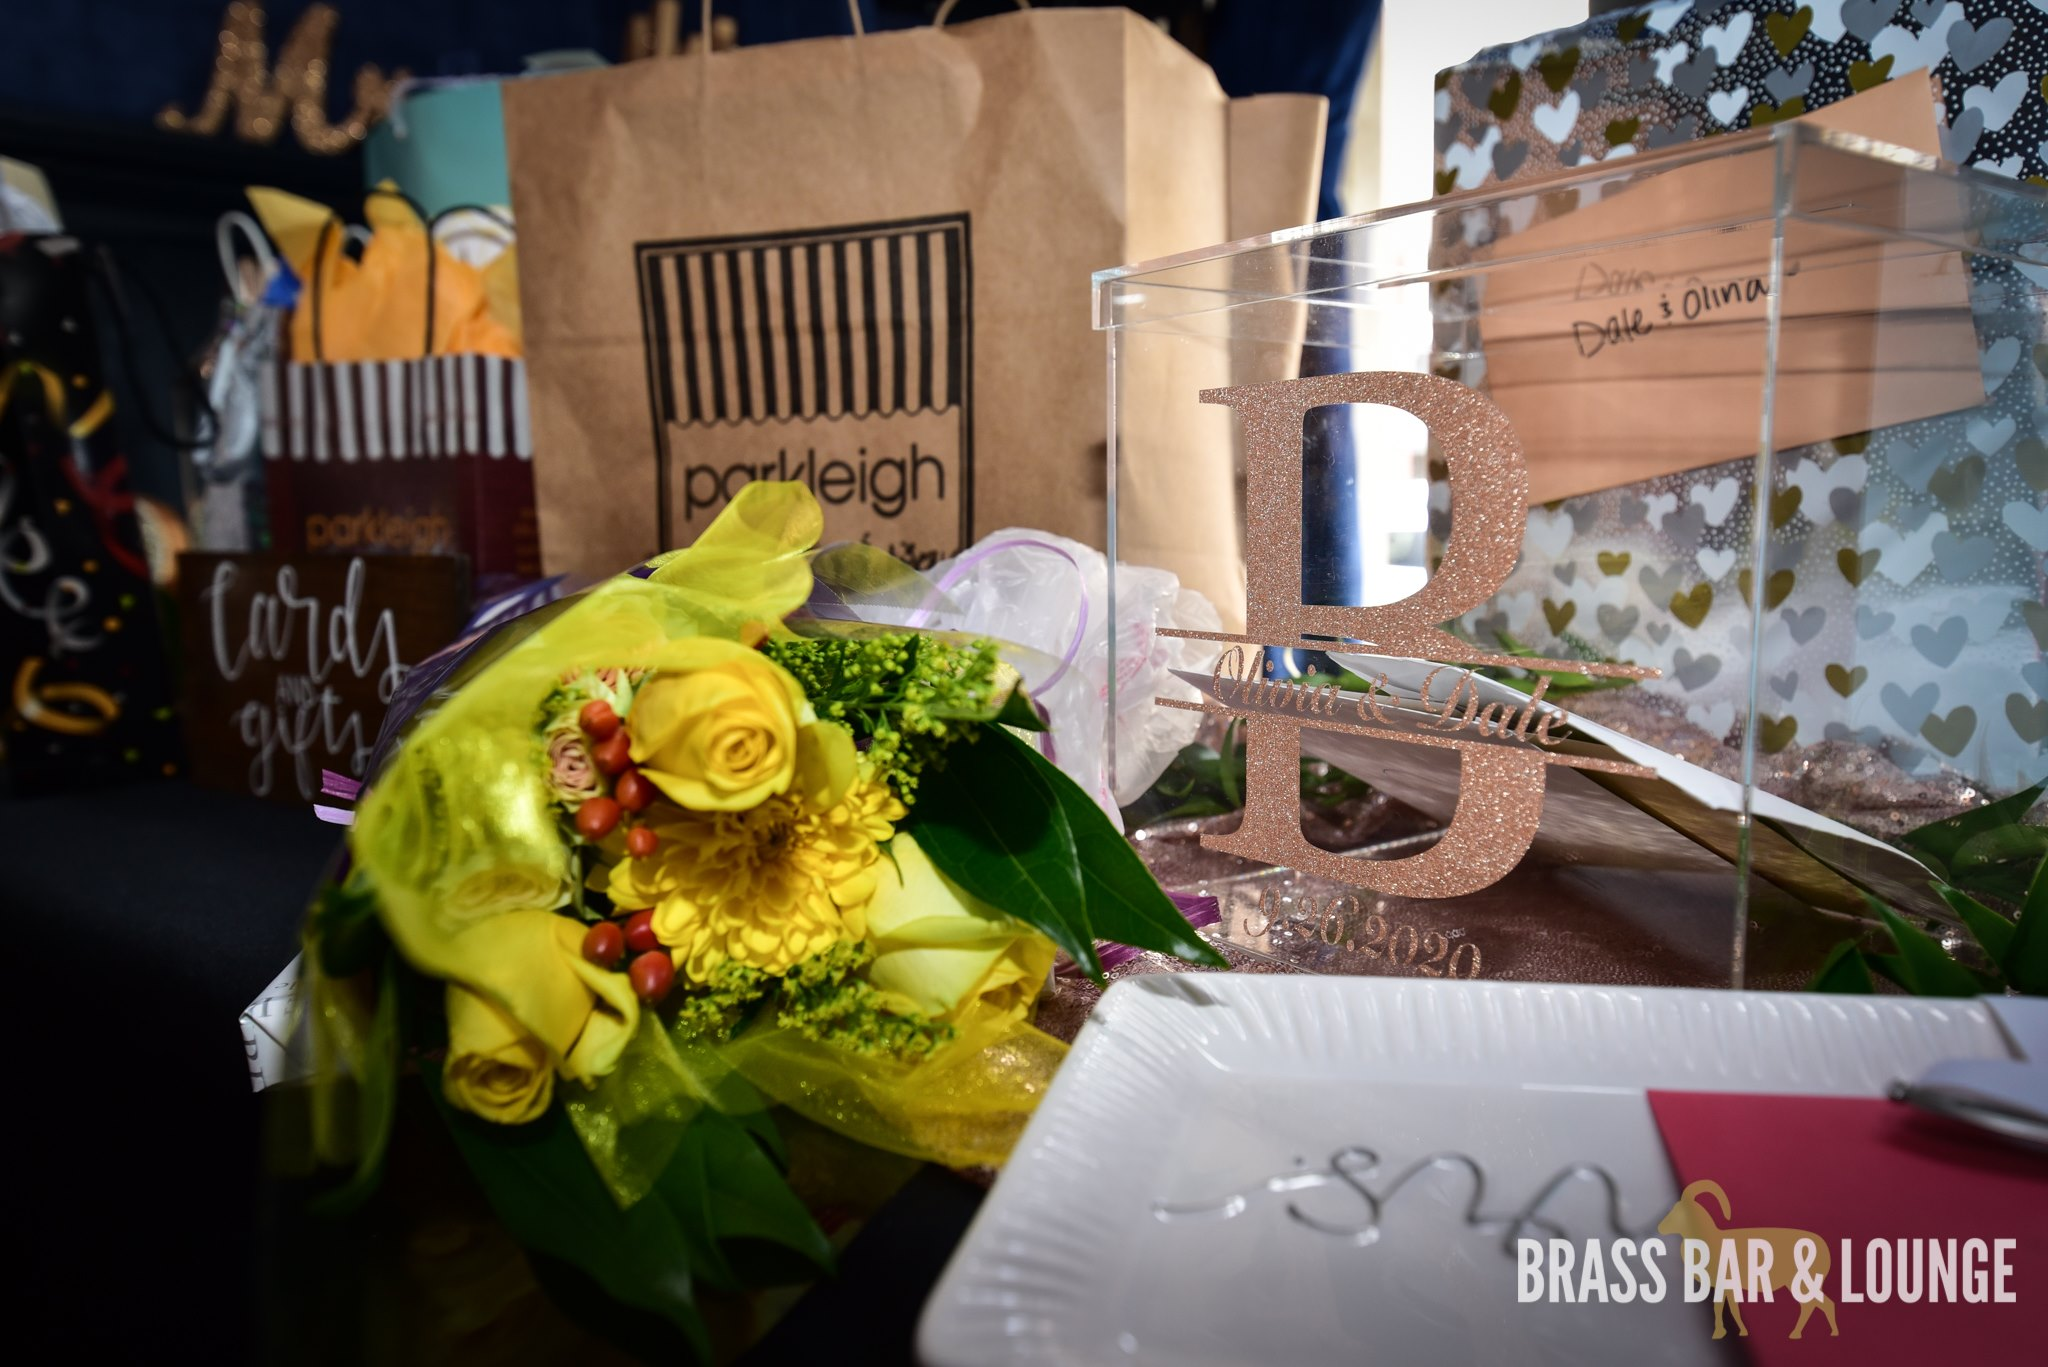 A gift table with bags and flowers.